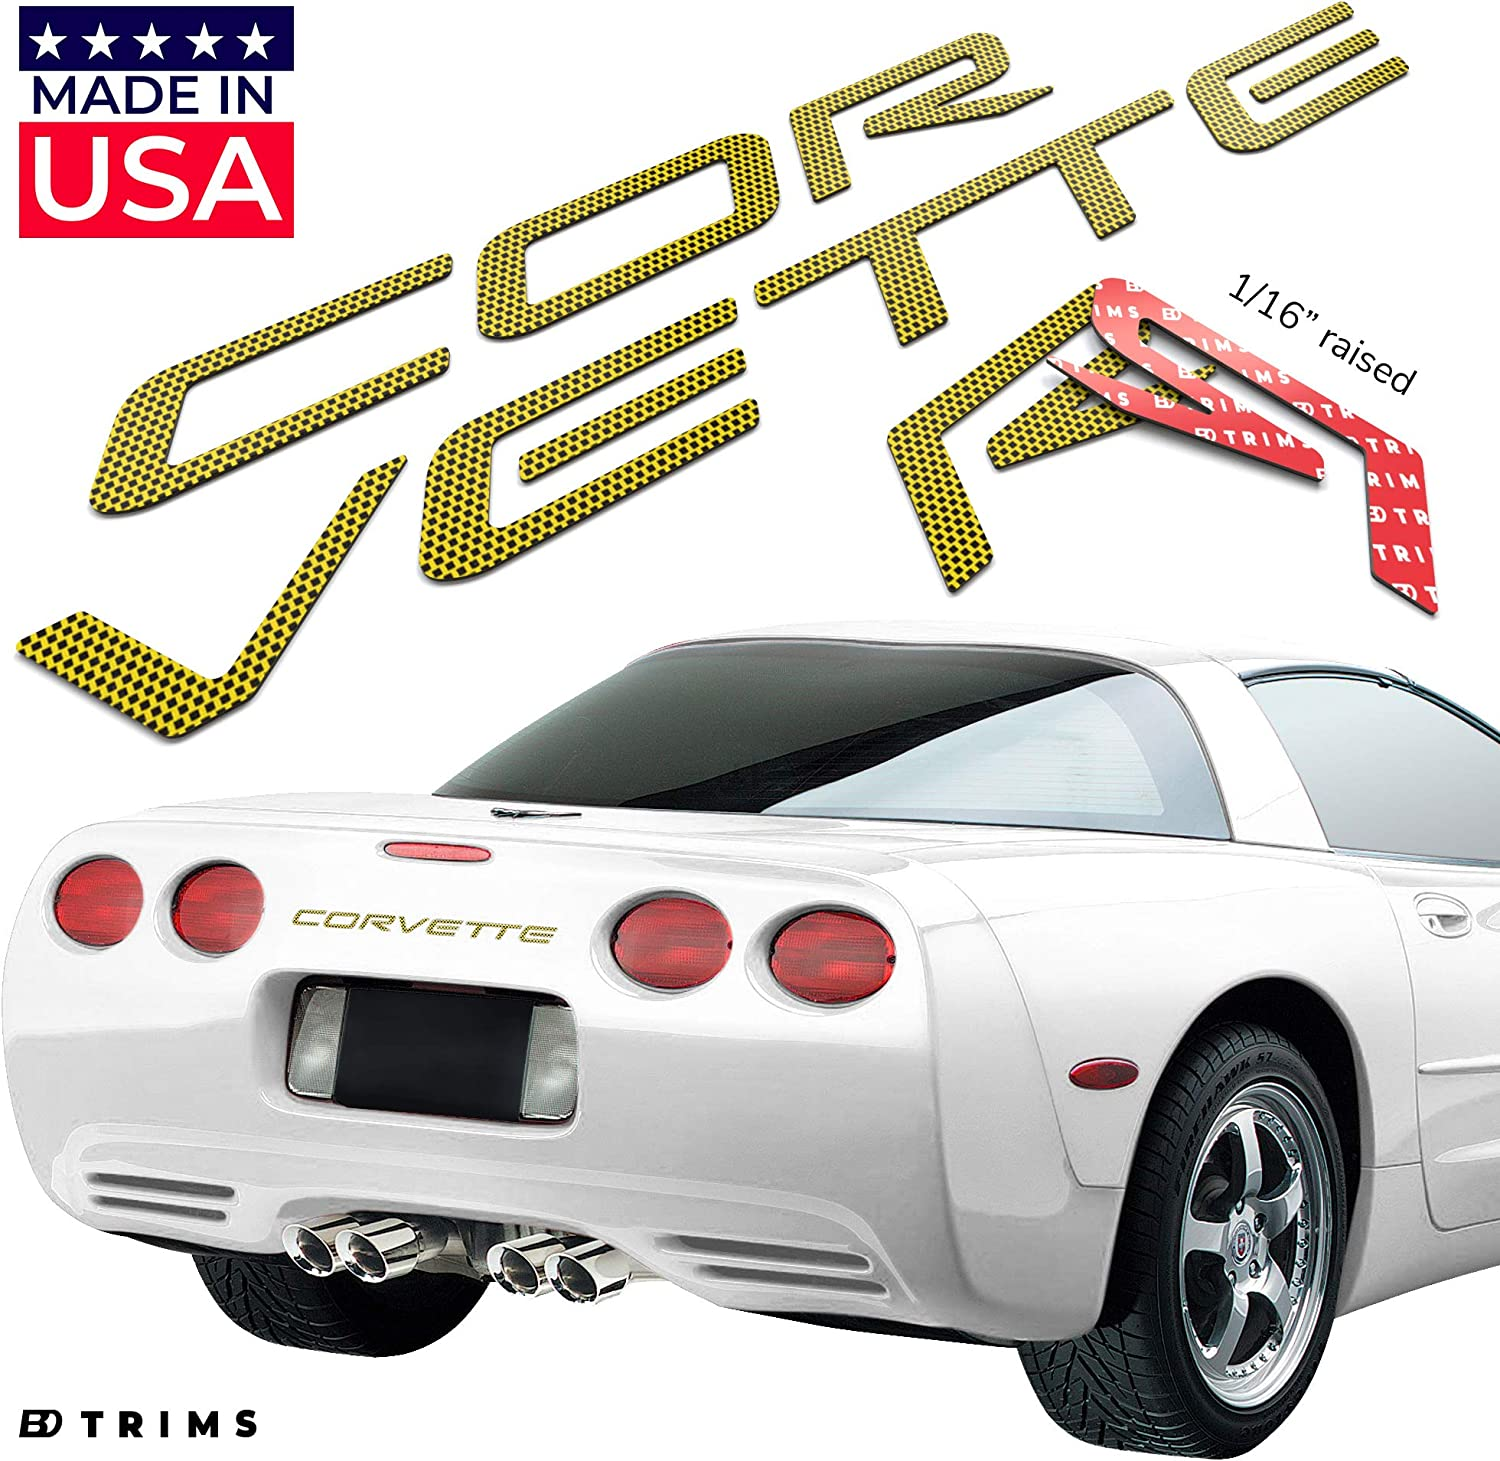 c5 chrome corvette lettering kit rear c4 also available